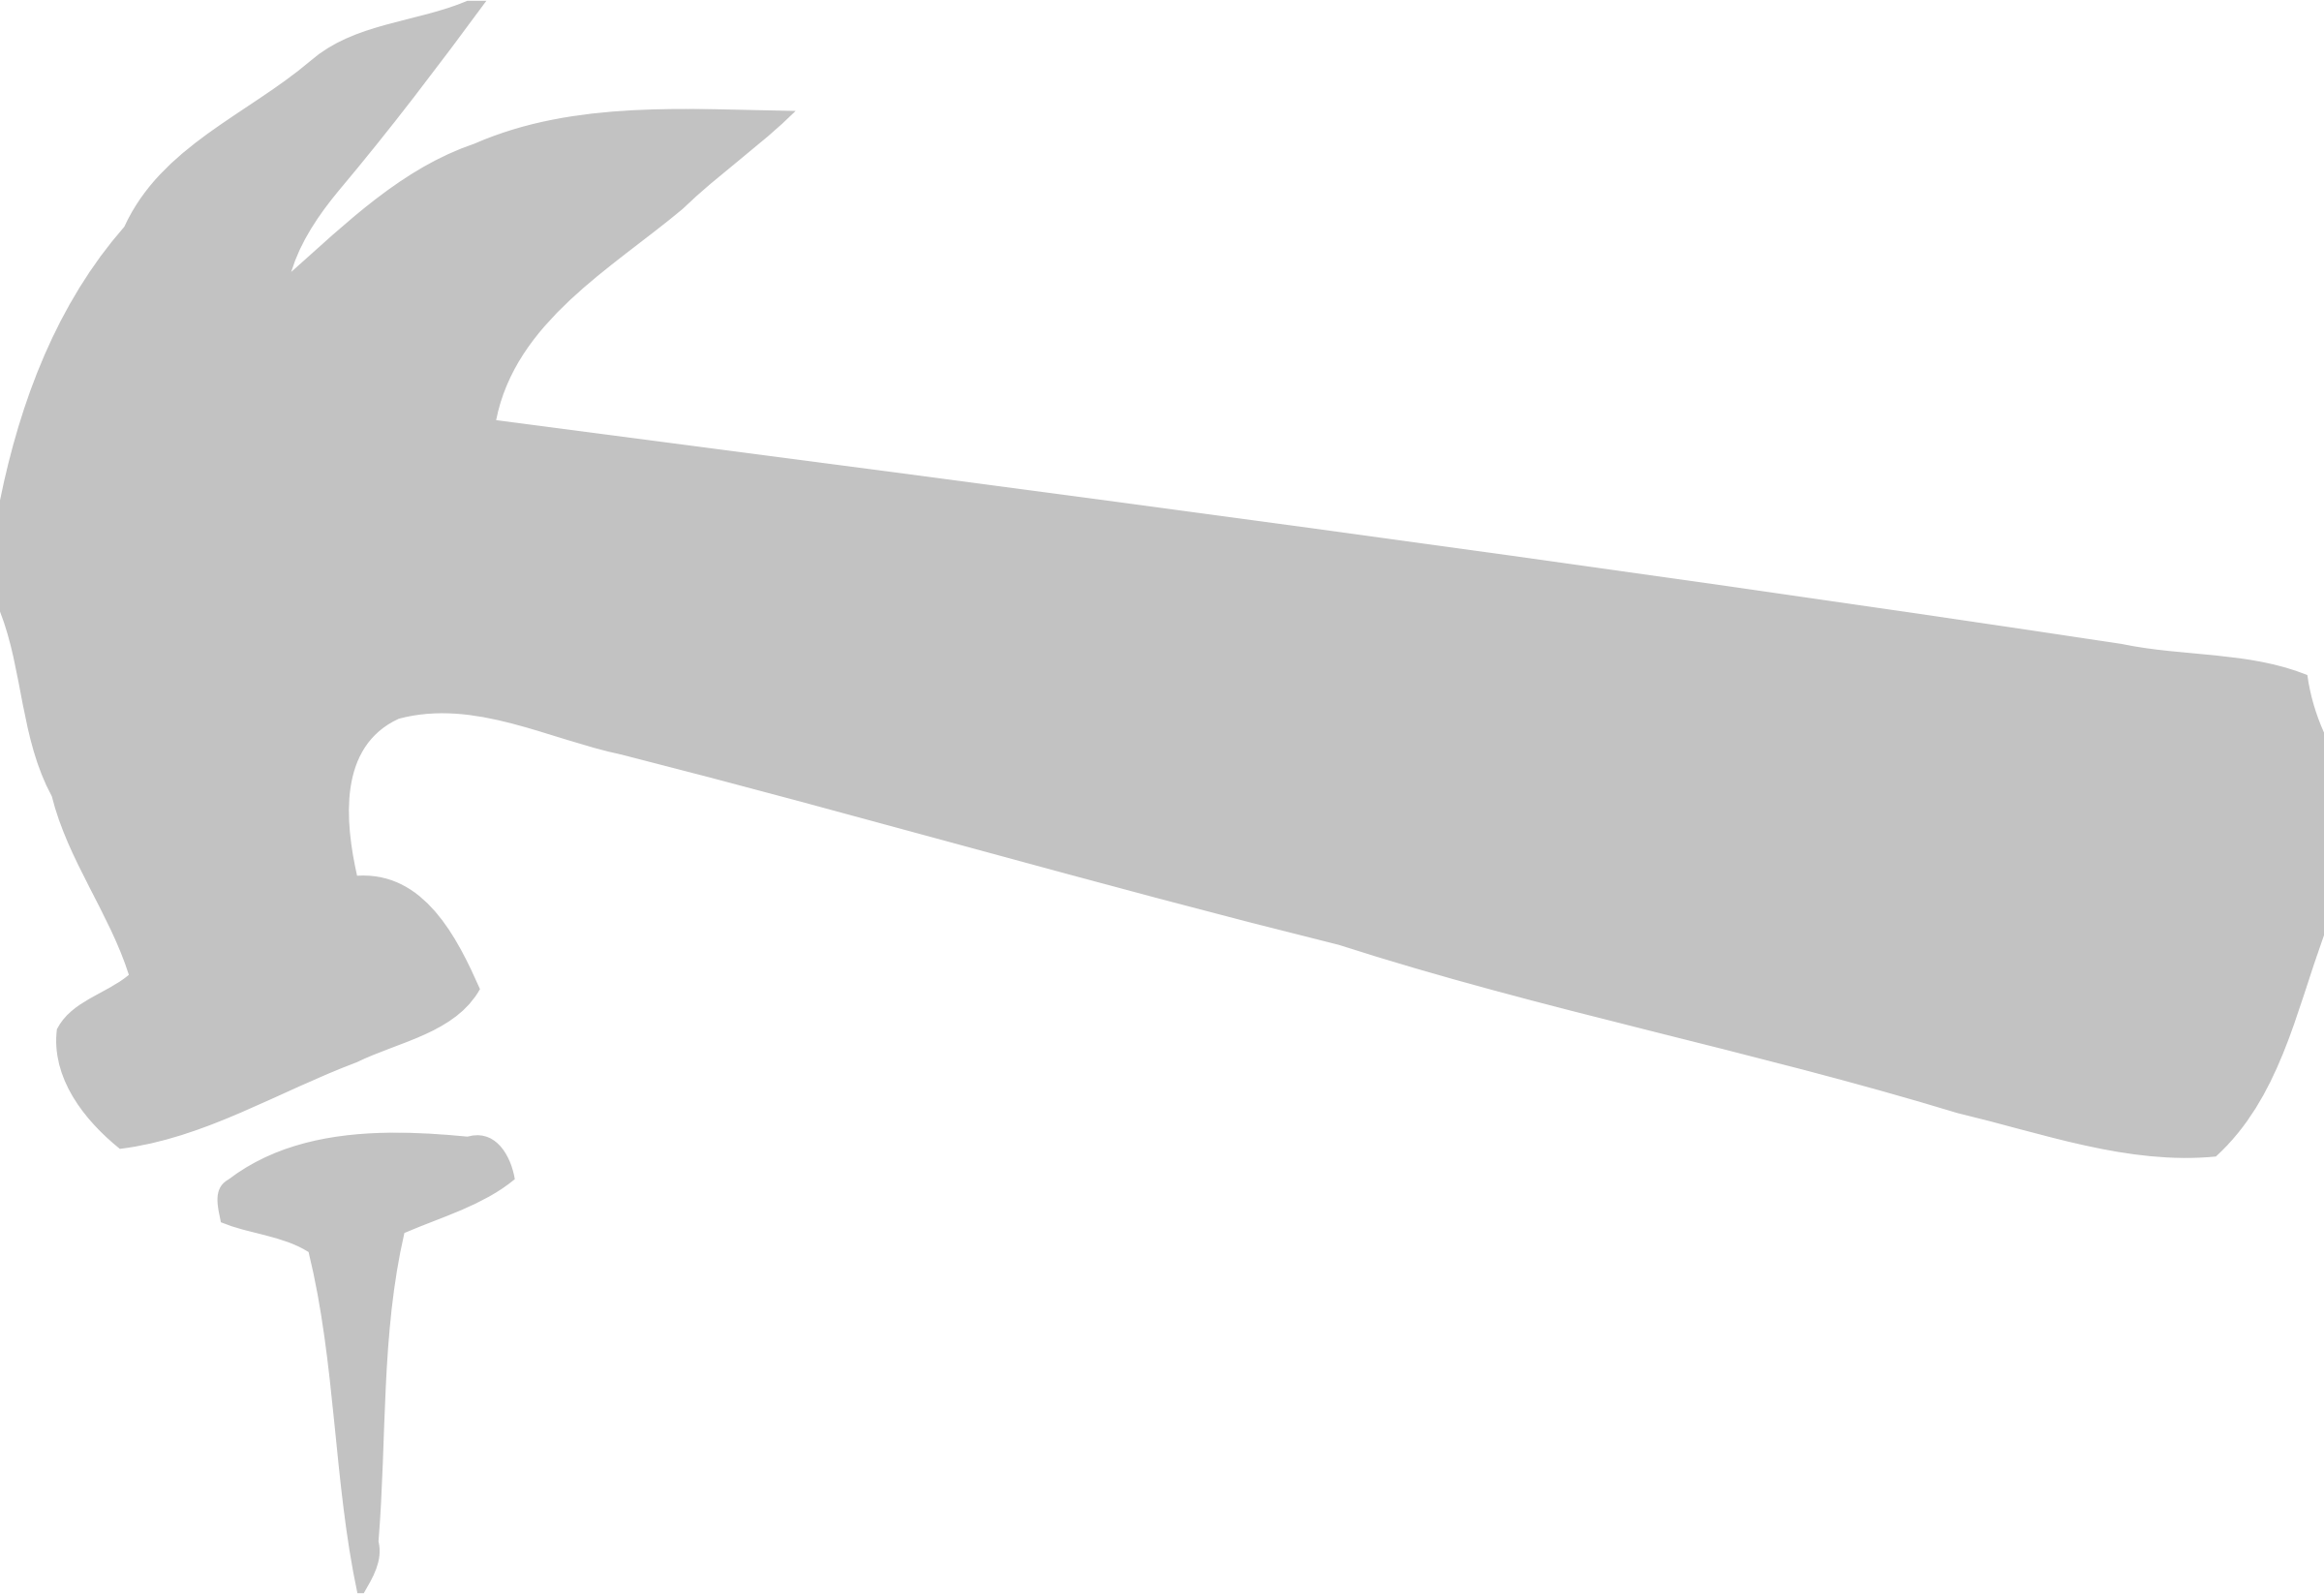 Hammer vectorized by Firkin